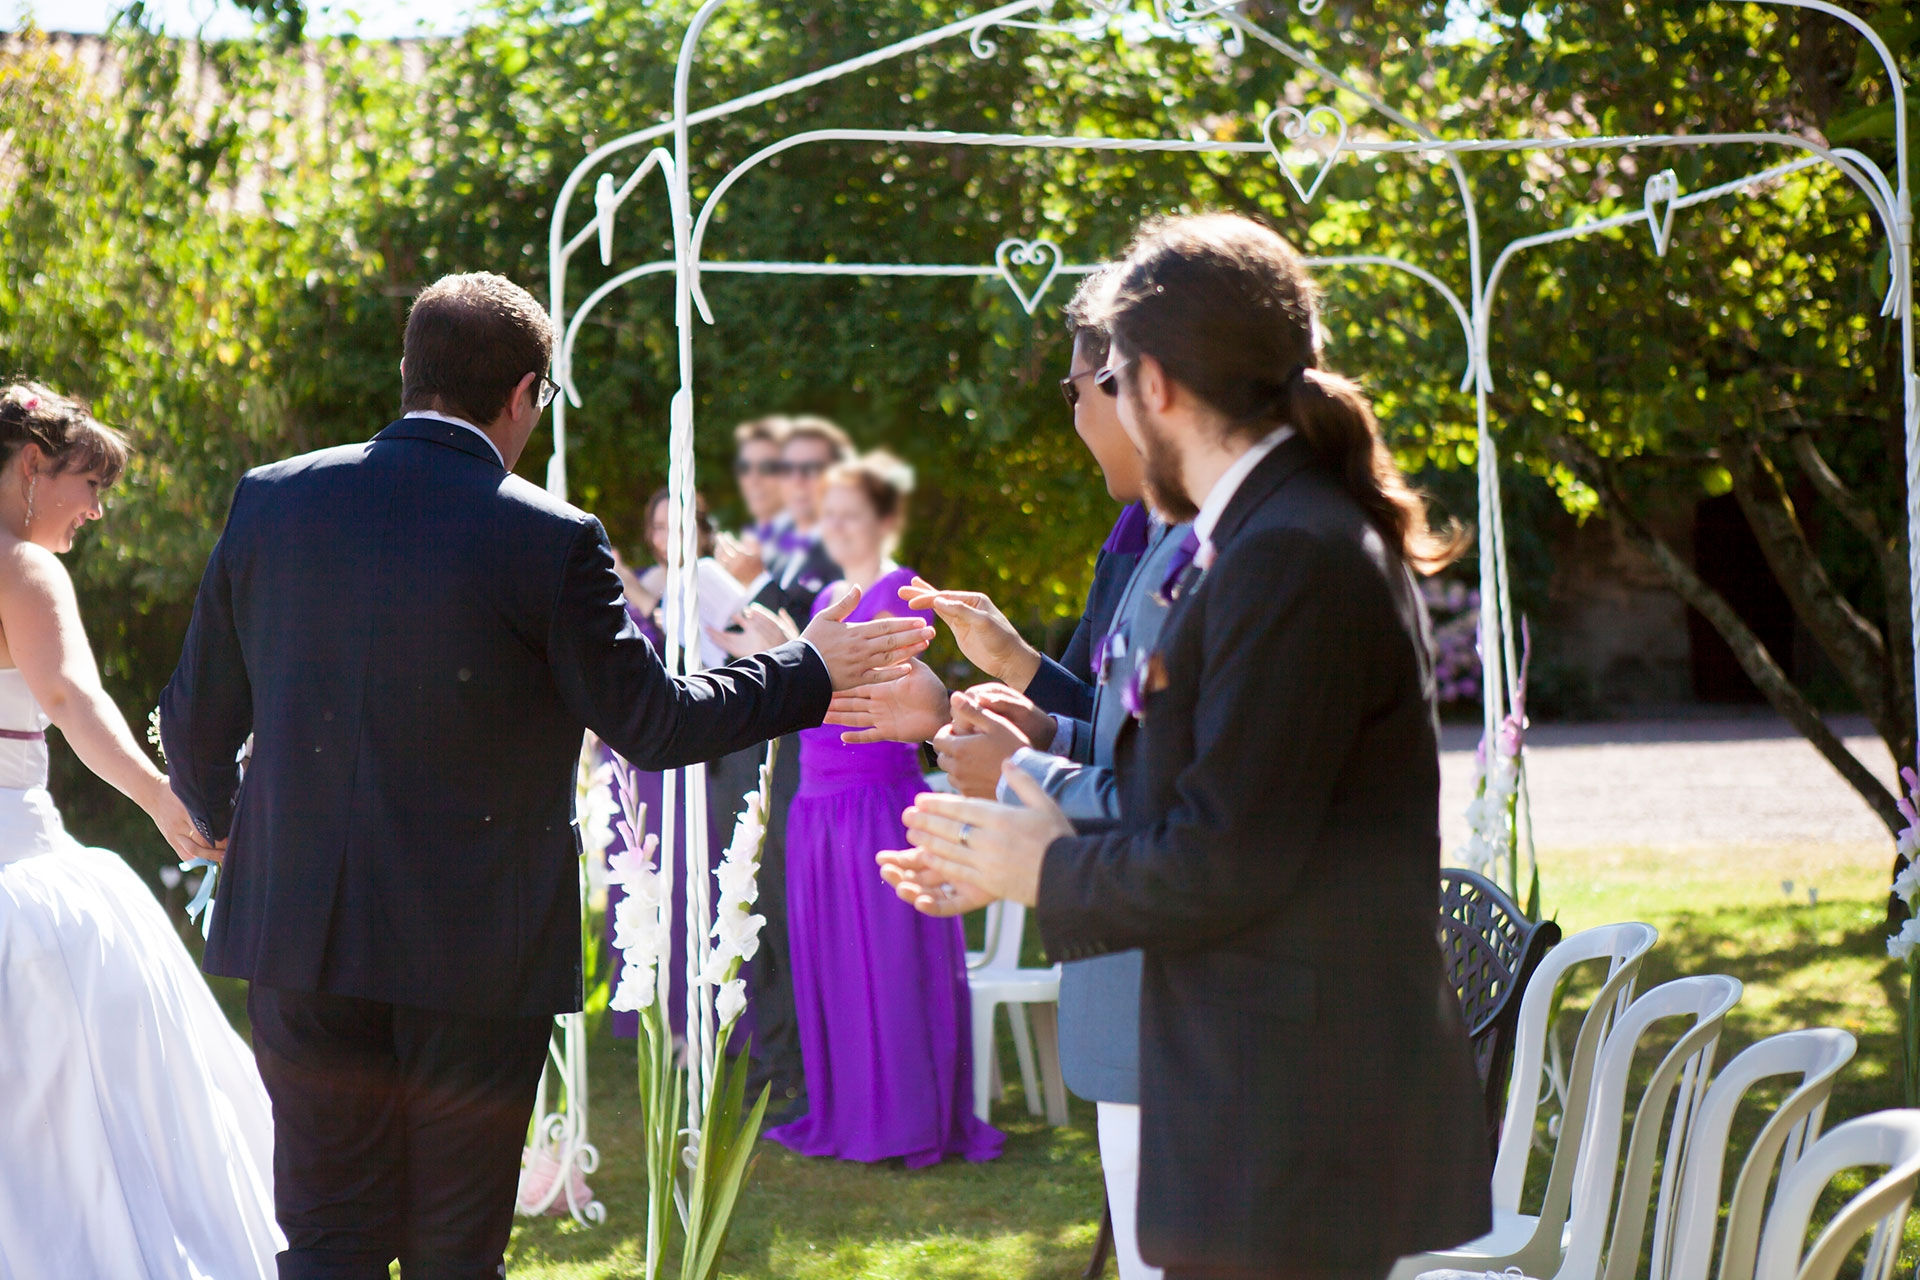 particuliers-evenements-mariages-oui-france&philippe-40